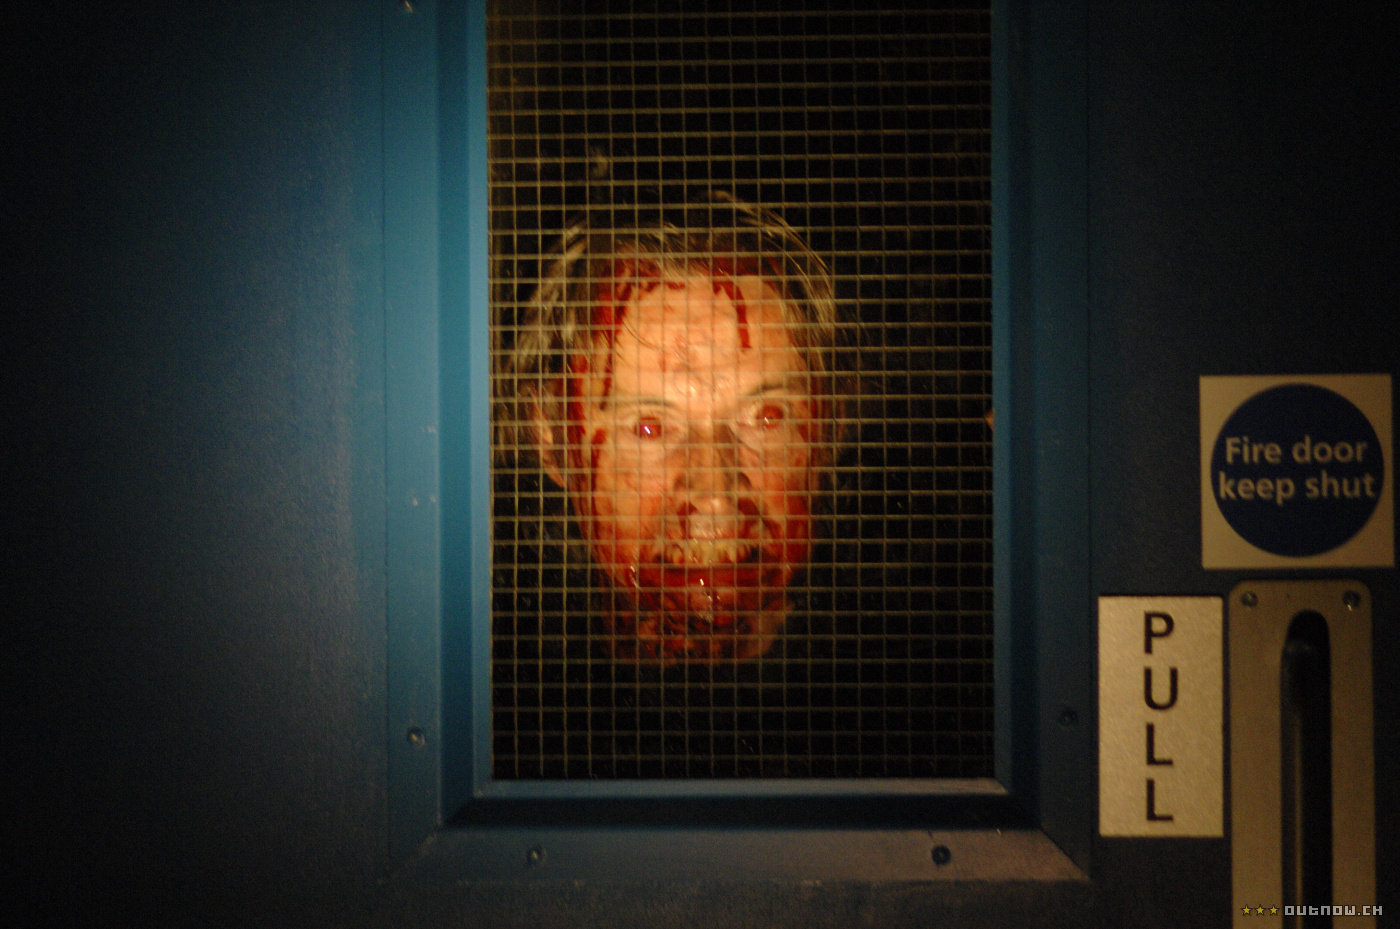 28 Weeks Later - 28 Weeks Later Image (20828743) - Fanpop